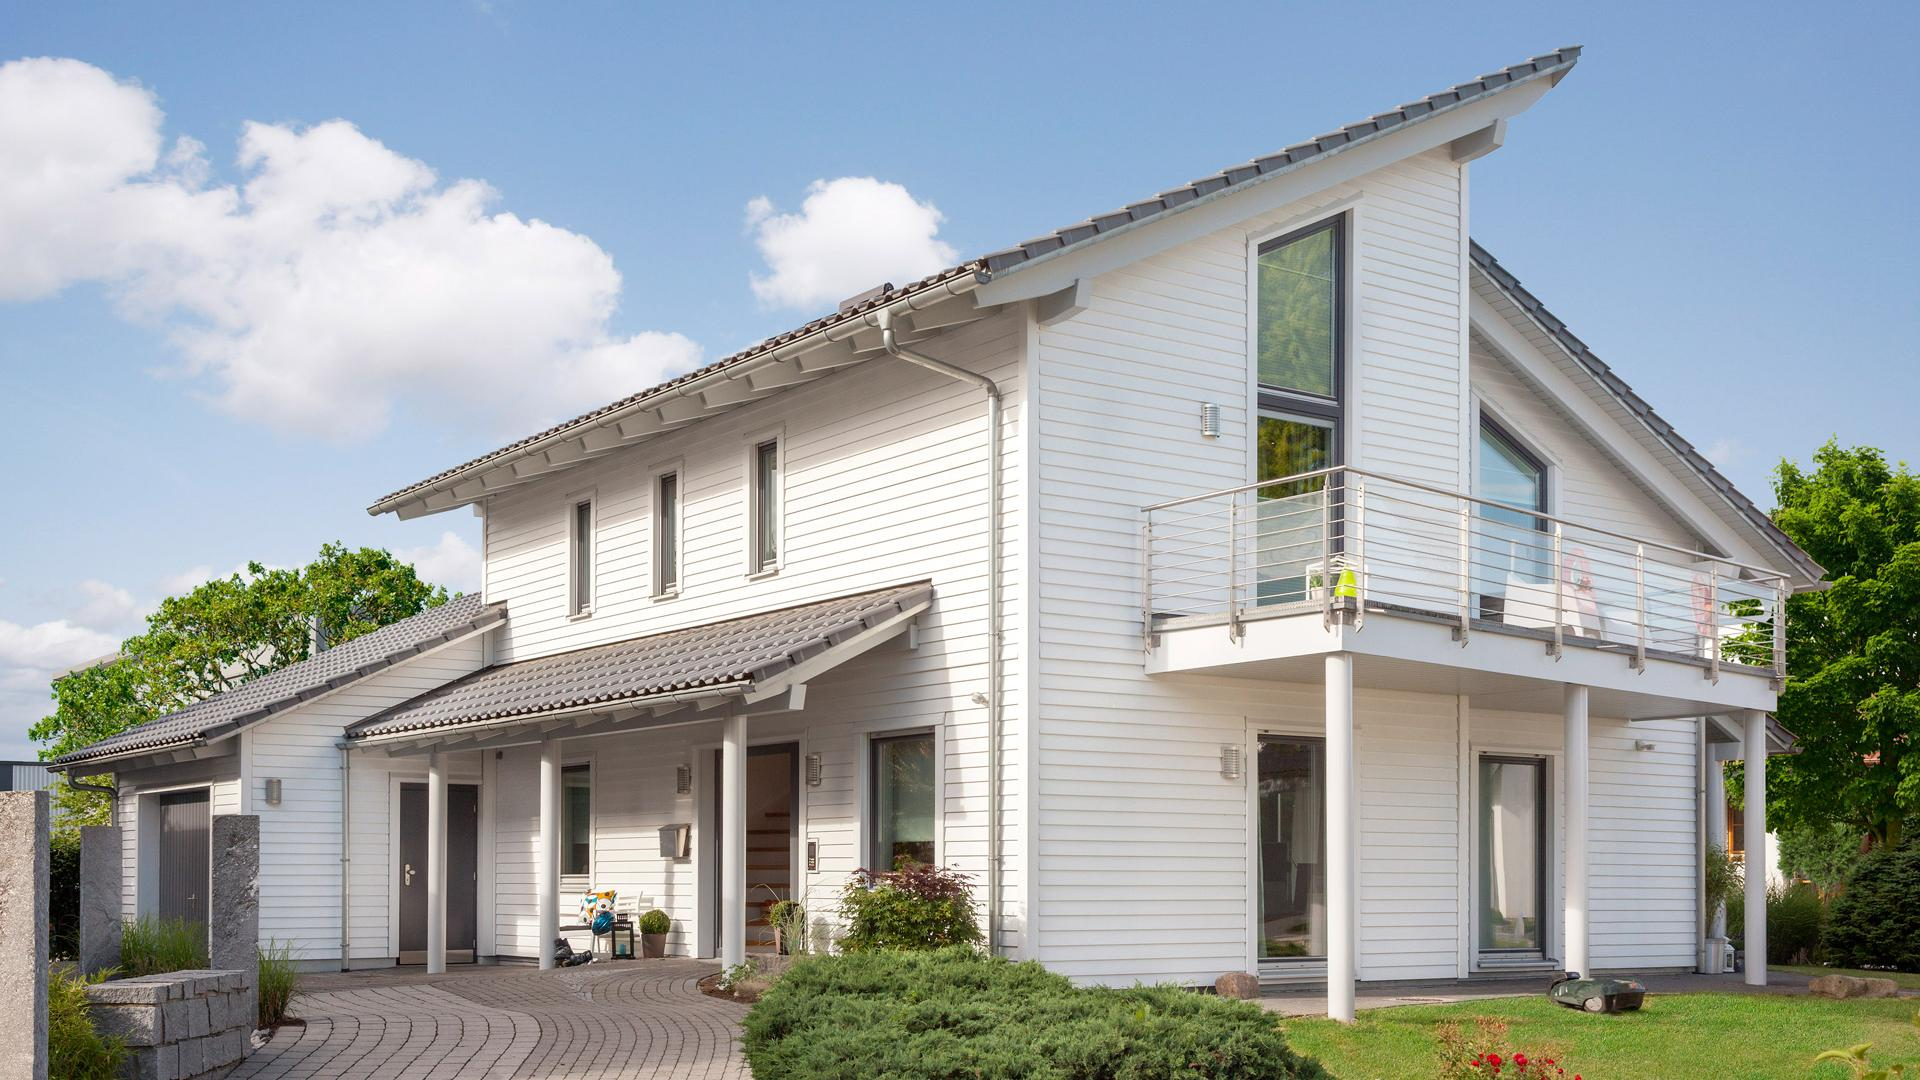 Young Family Home a Fellbach presso Stoccarda